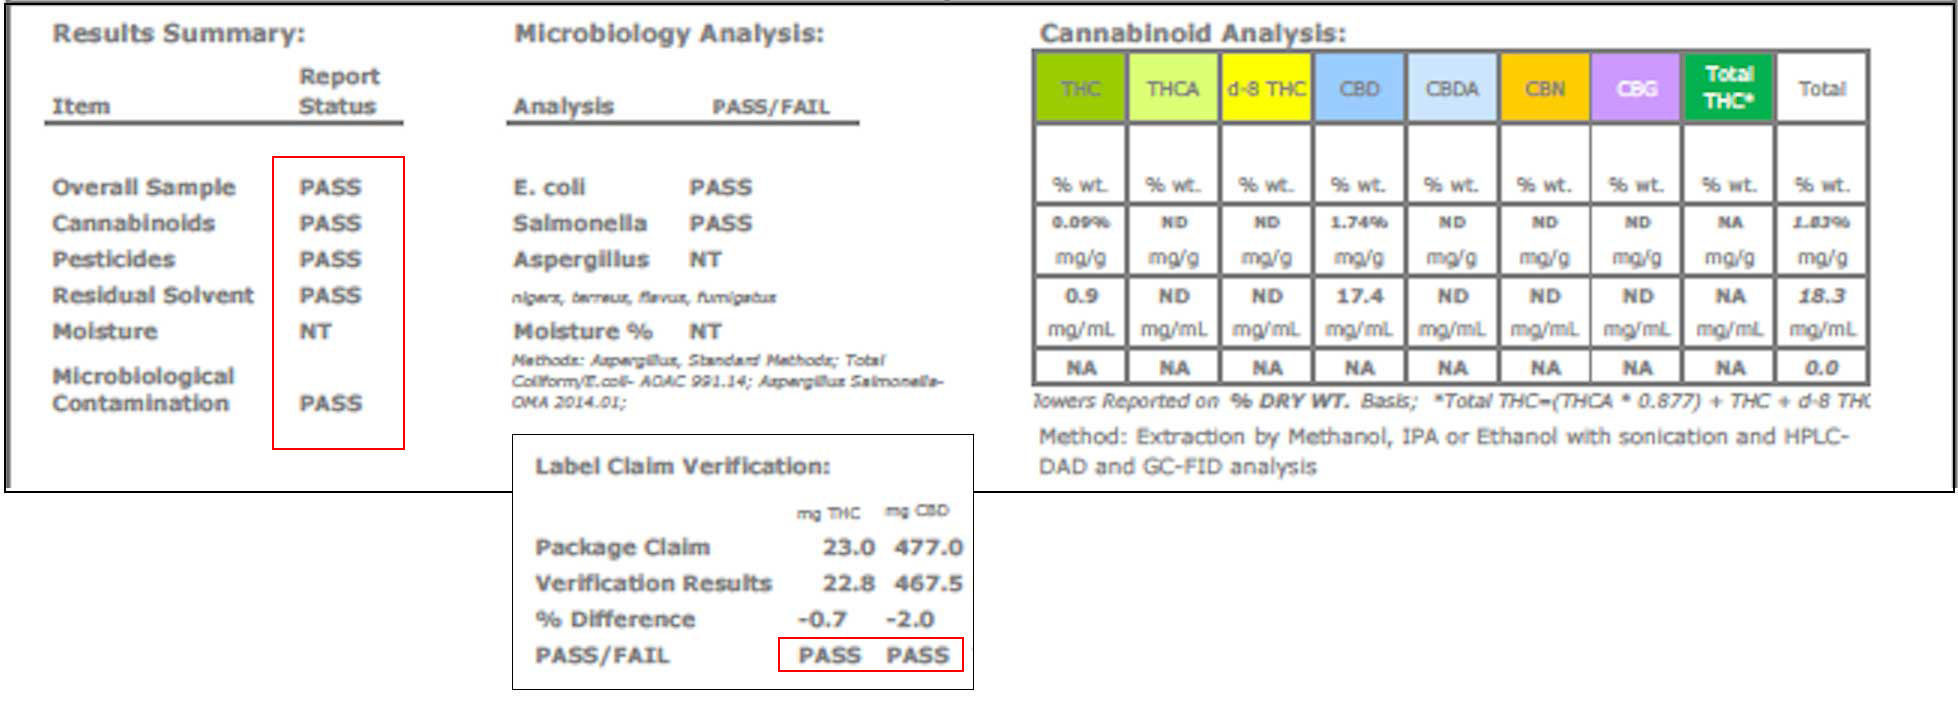 Passing Cannabis Edibles Lab Tests, How Difficult Is It?